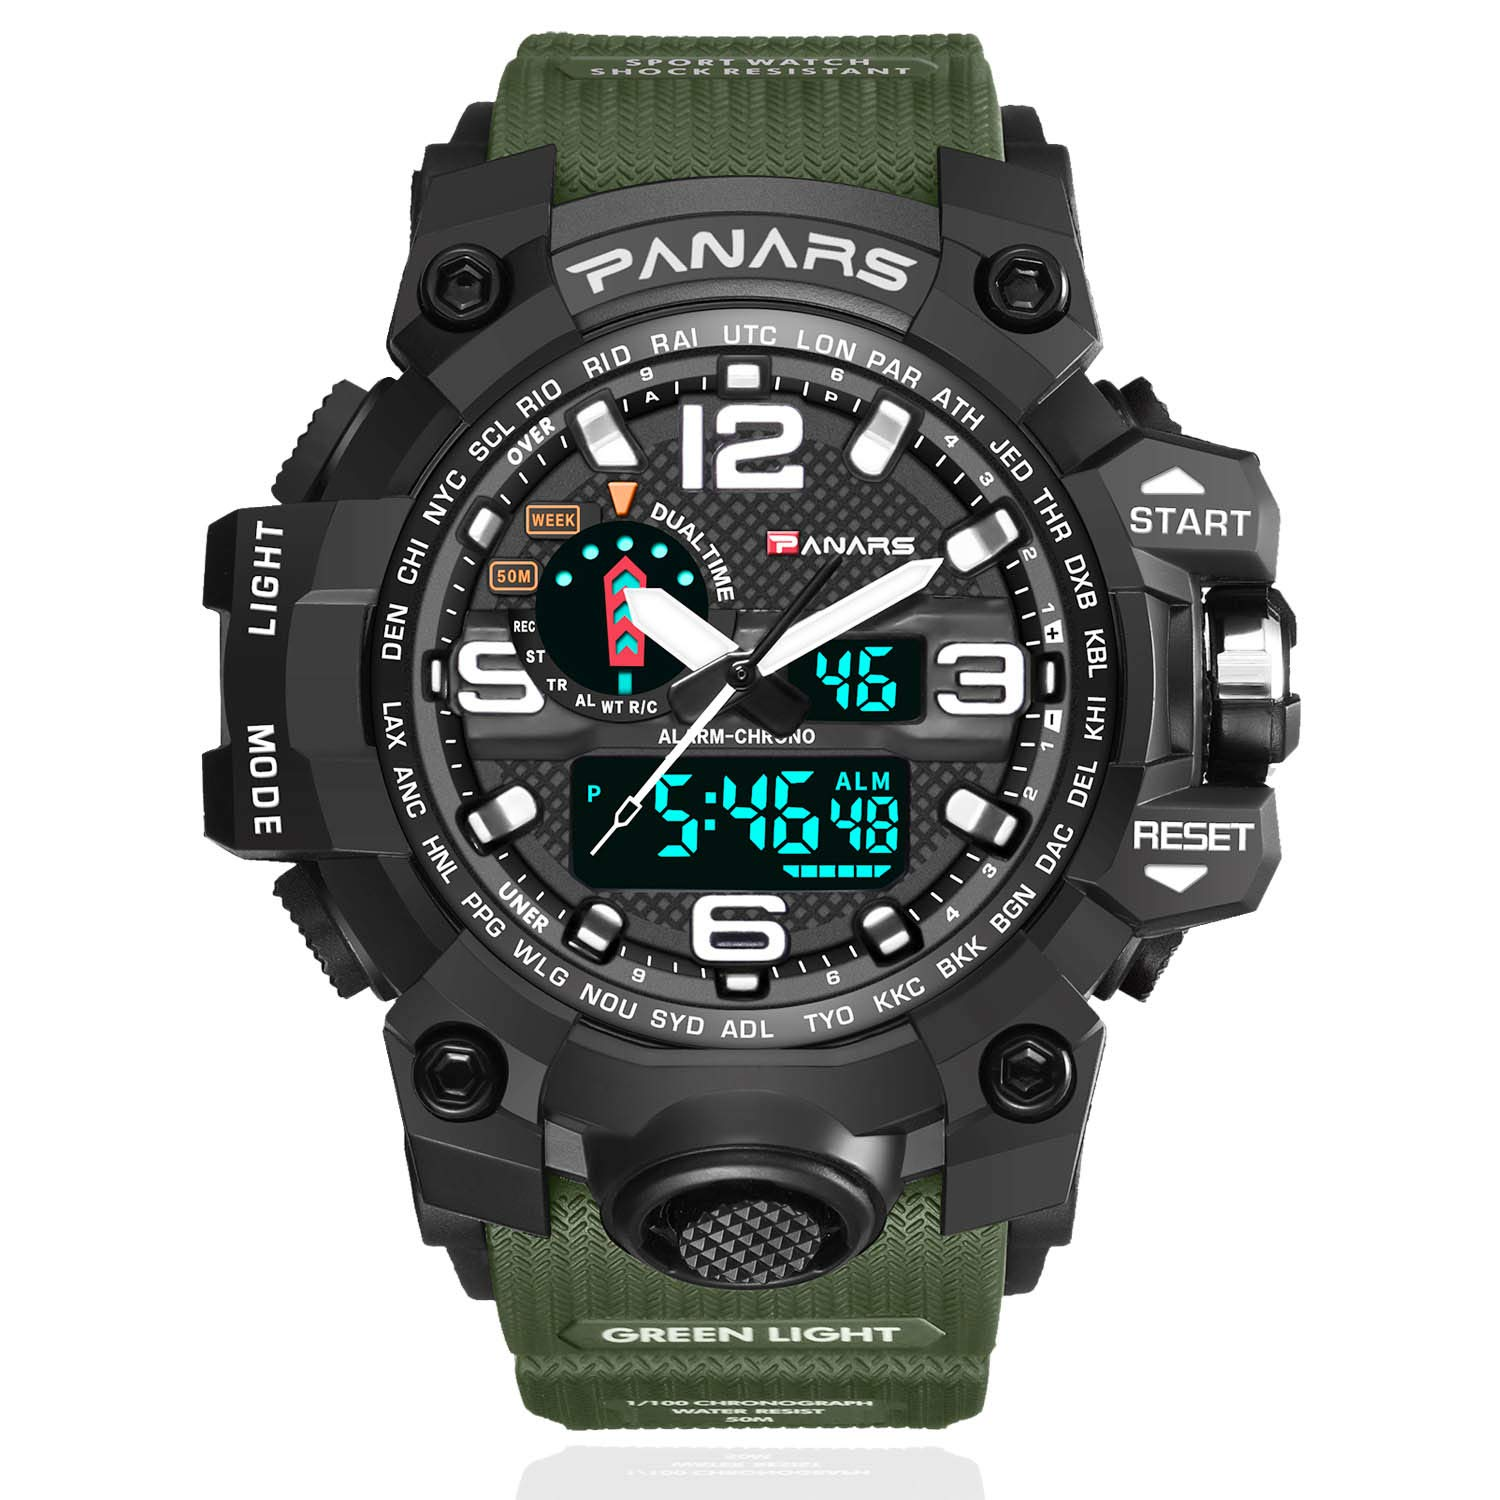 Watches Swim 50m Waterproof Watch Outdoor Sports Men Watches Quartz Electronic Dual Display Military Style Multifunction Male Luminous A Attractive Fashion